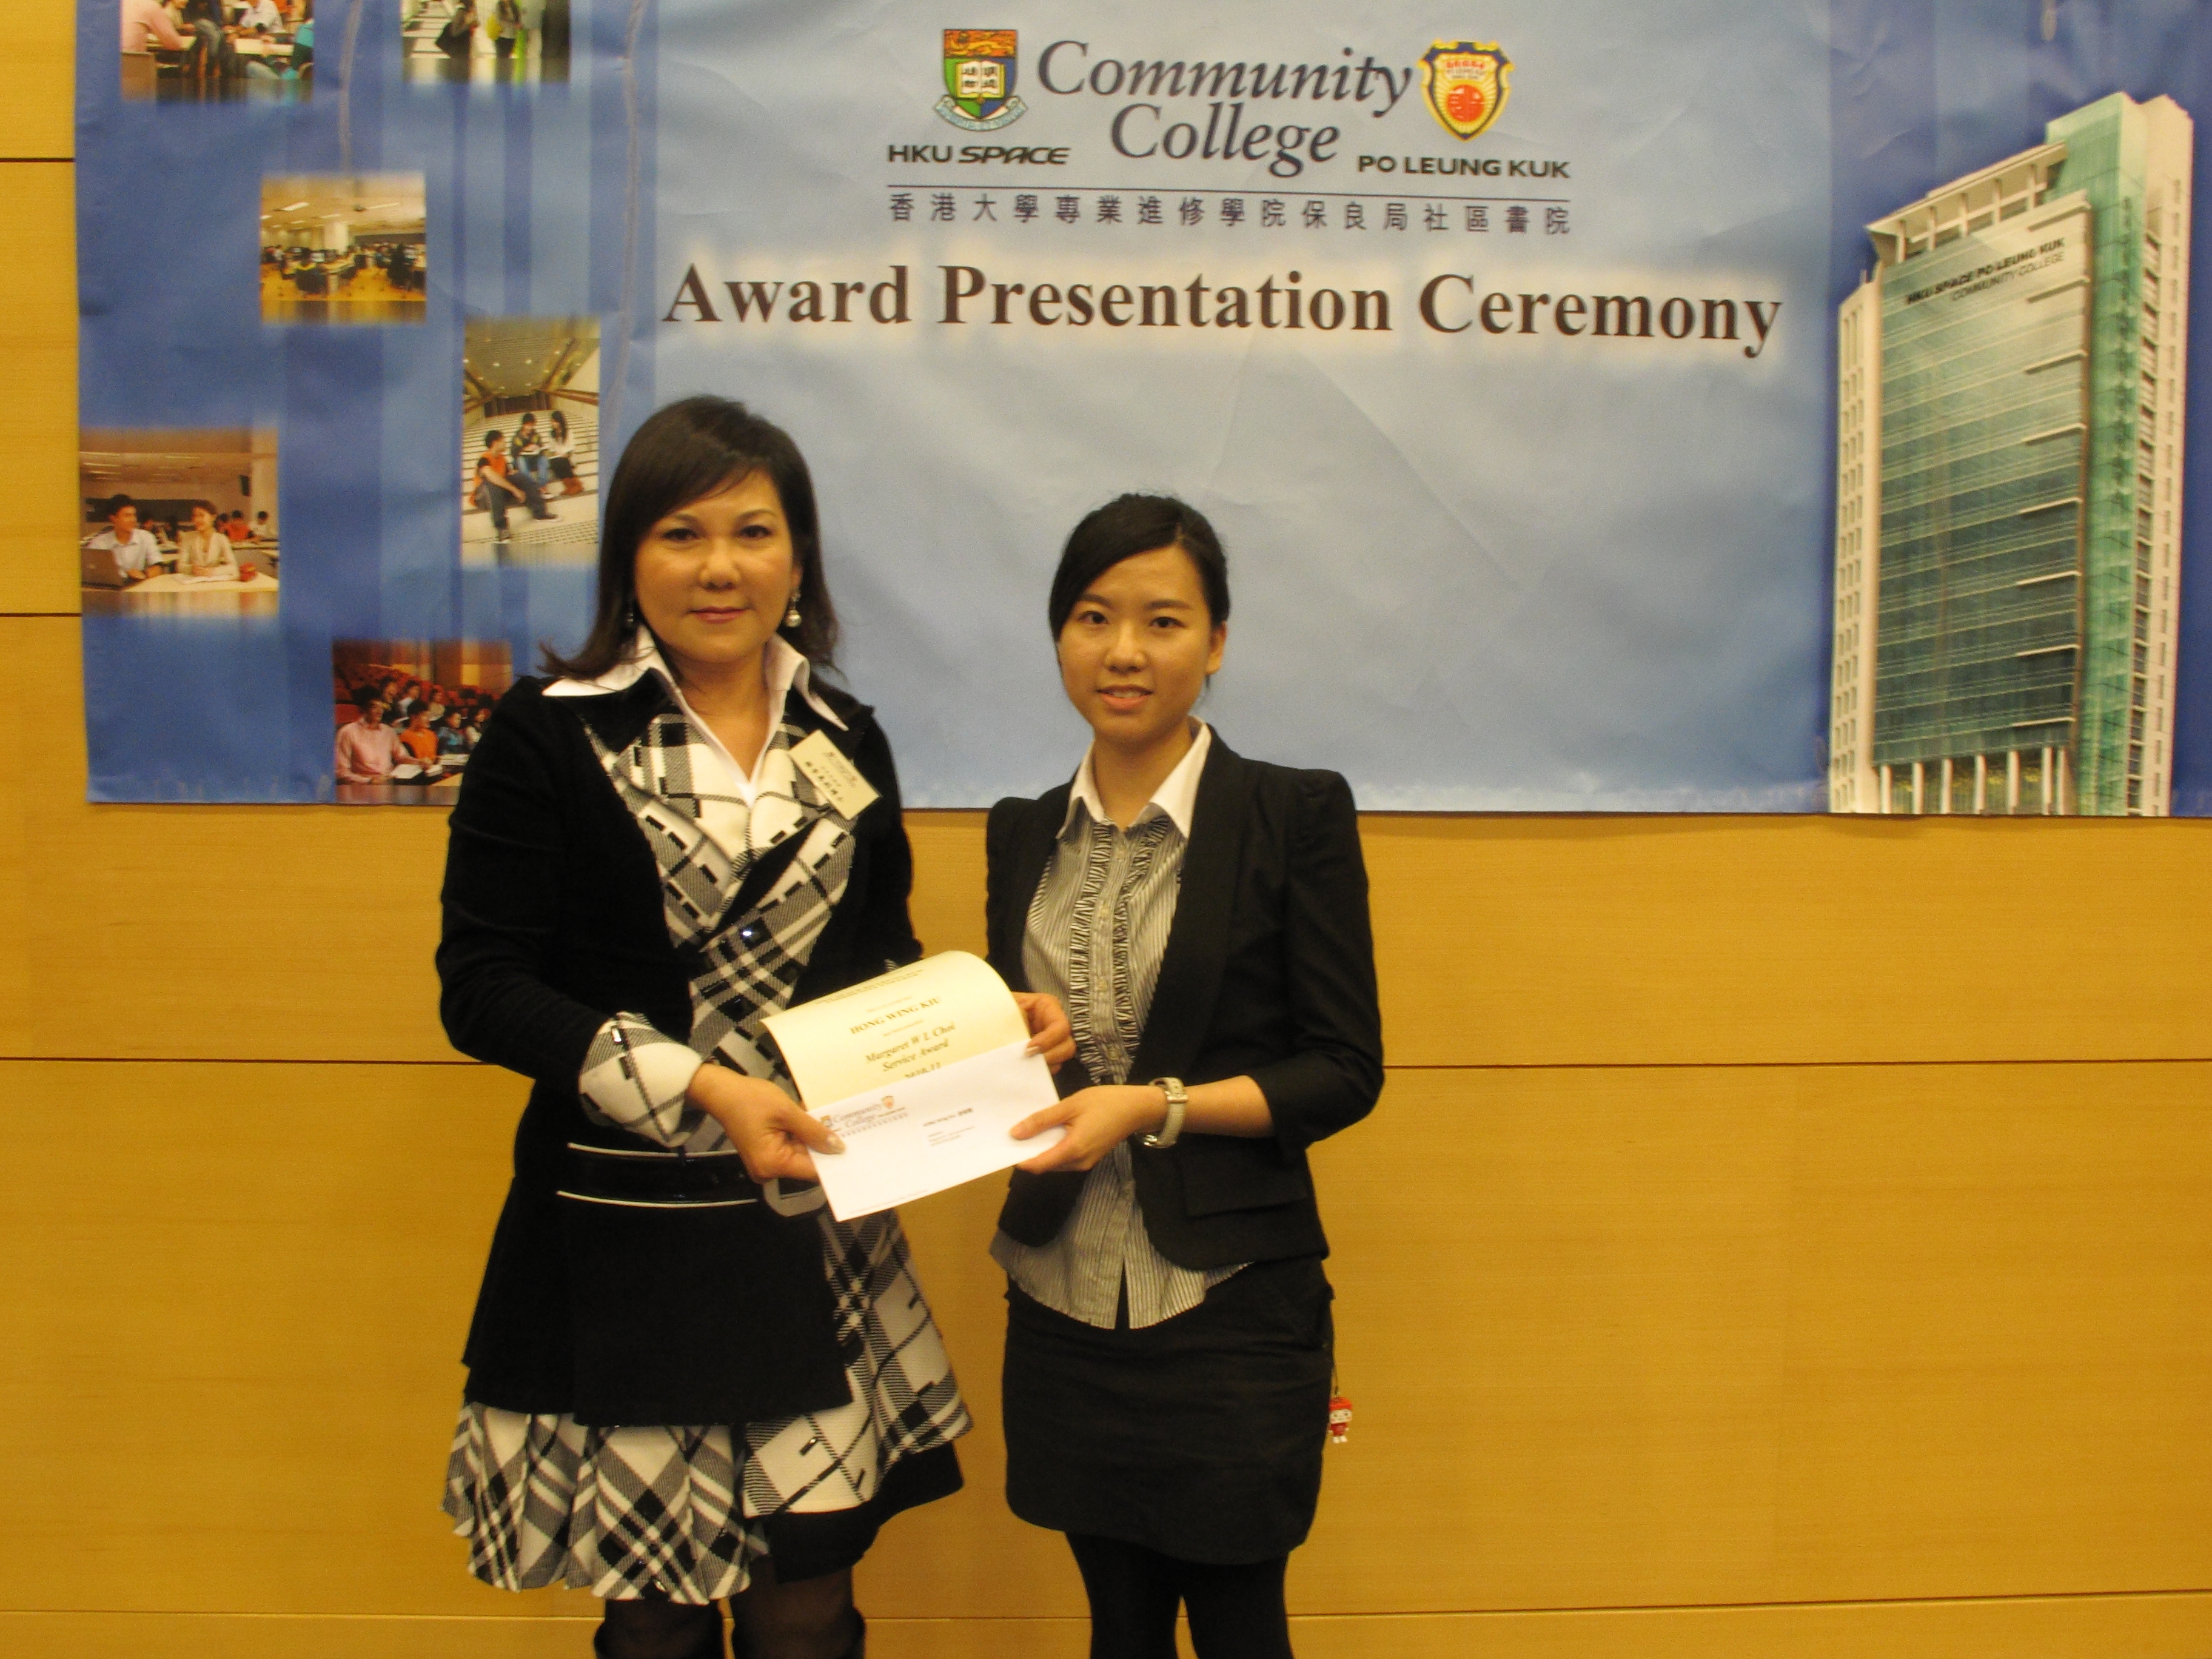 Award Presentation Ceremony 2011 - Photo - 35